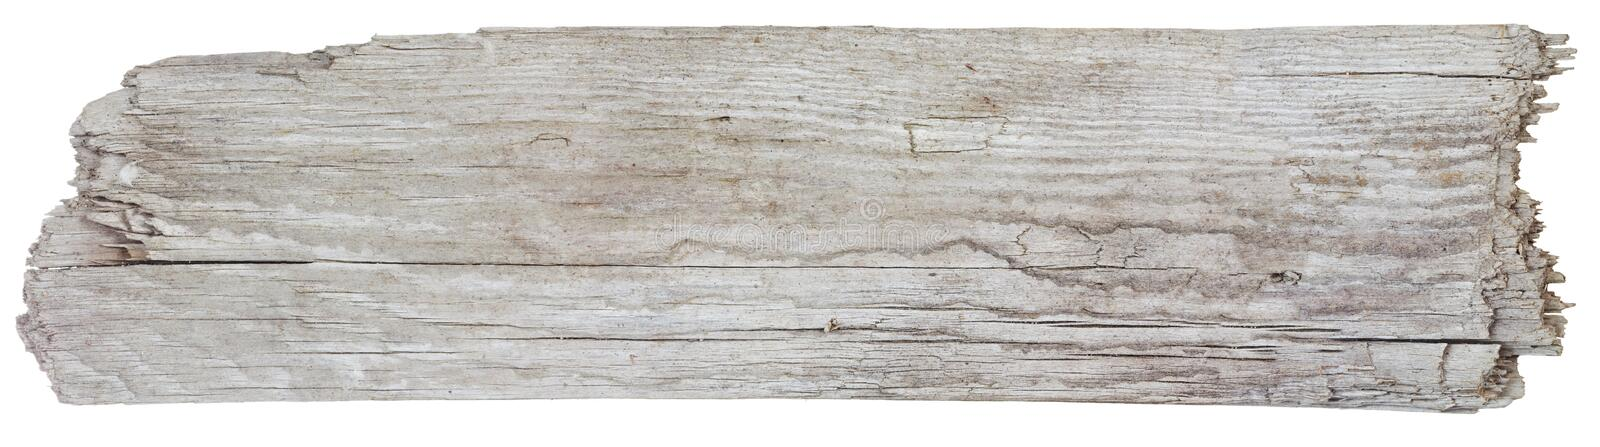 Driftwood plank. Rough hewn driftwood sign background royalty free stock images